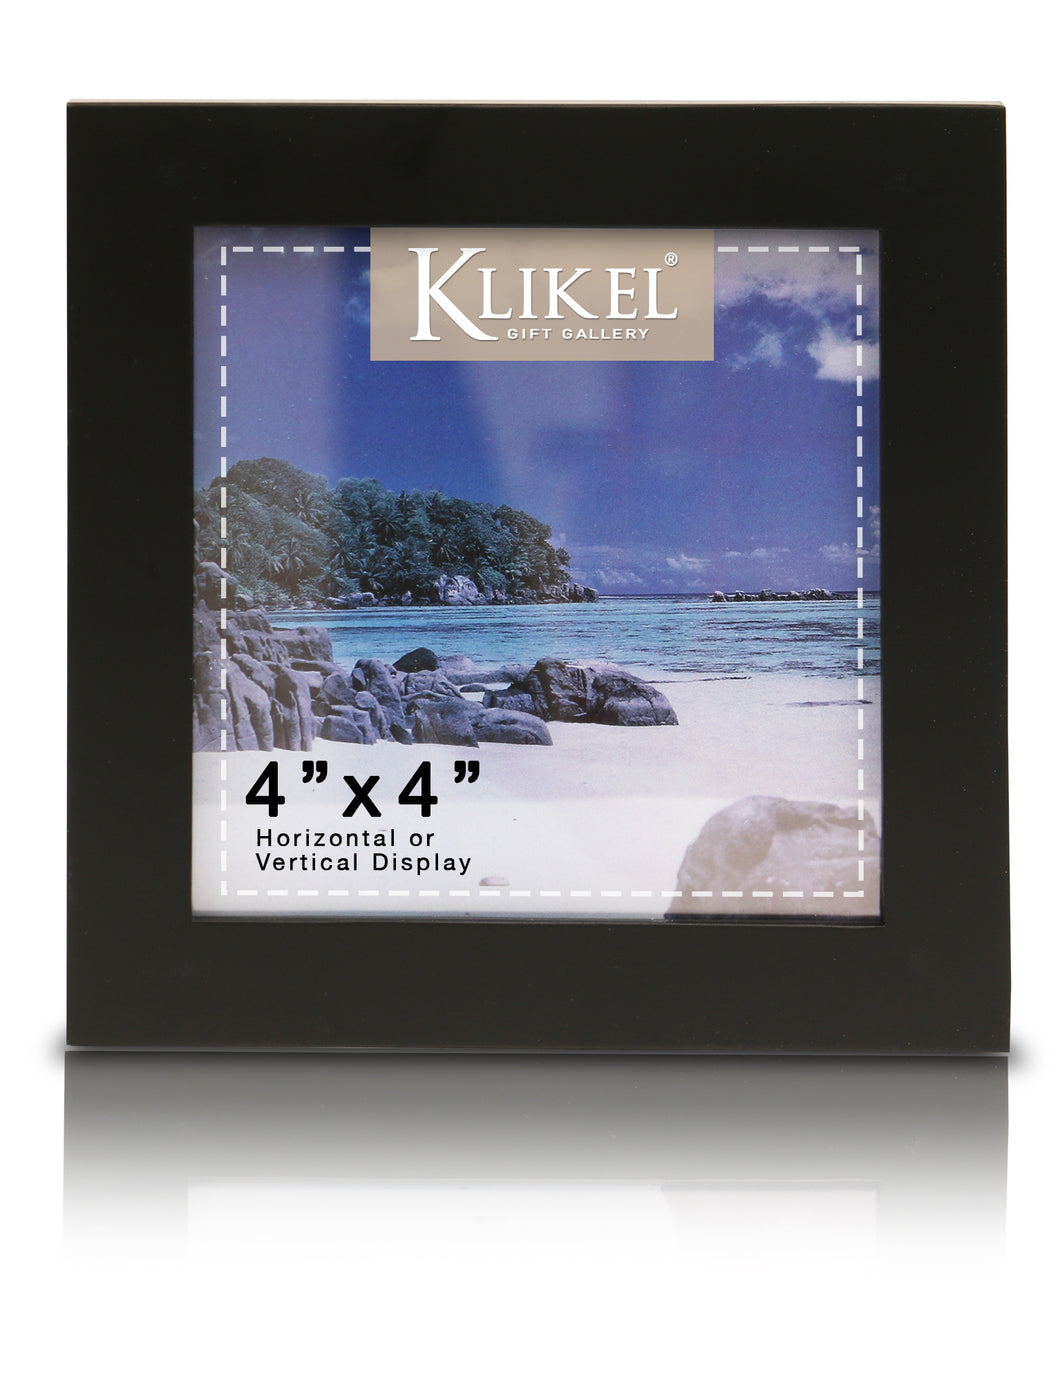 Black Picture Frame - 4x4 Black Wooden Photo Frame - Made of Real Wood with Glass Photo Protection - Ready for Wall Hanging and Table Standing Display